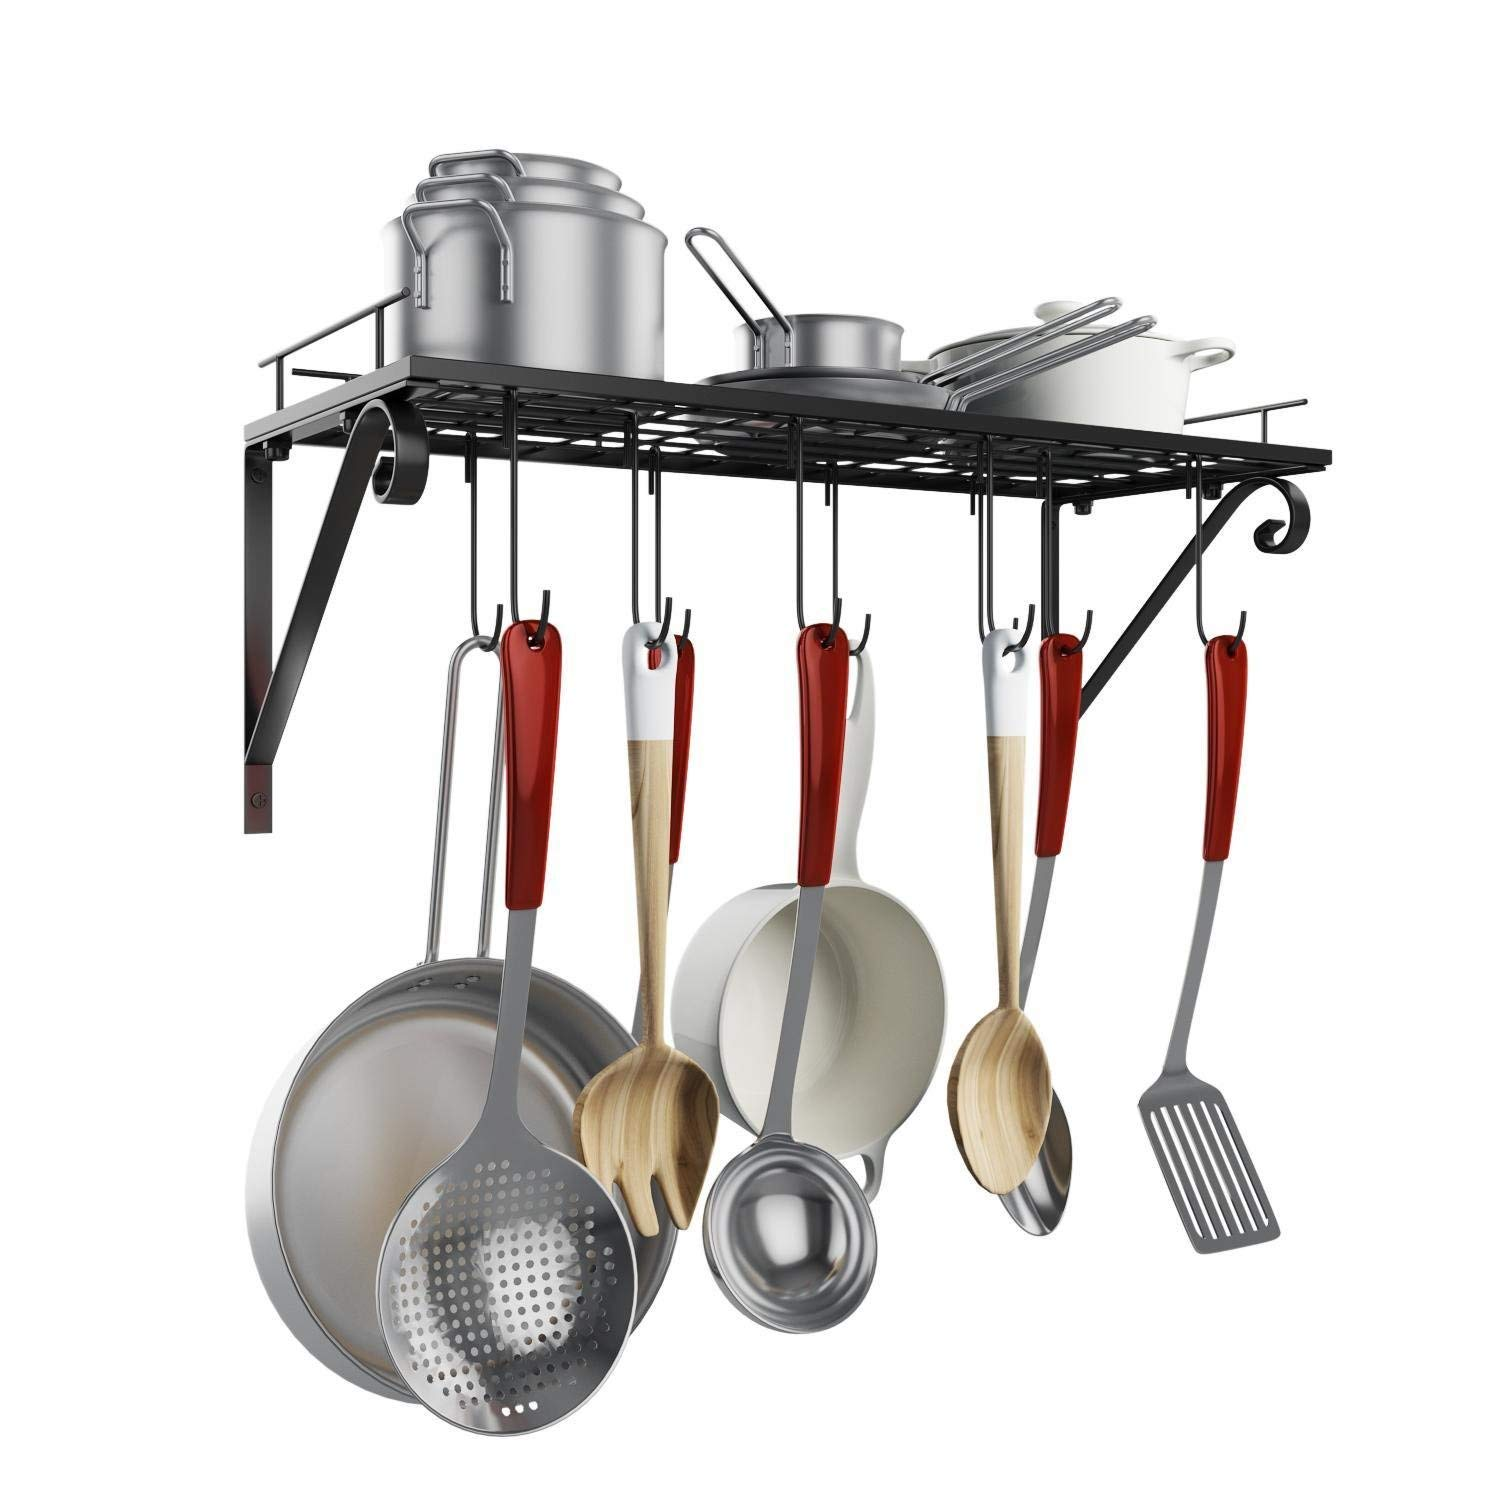 Pan Wall Rack Find Deals On Line At